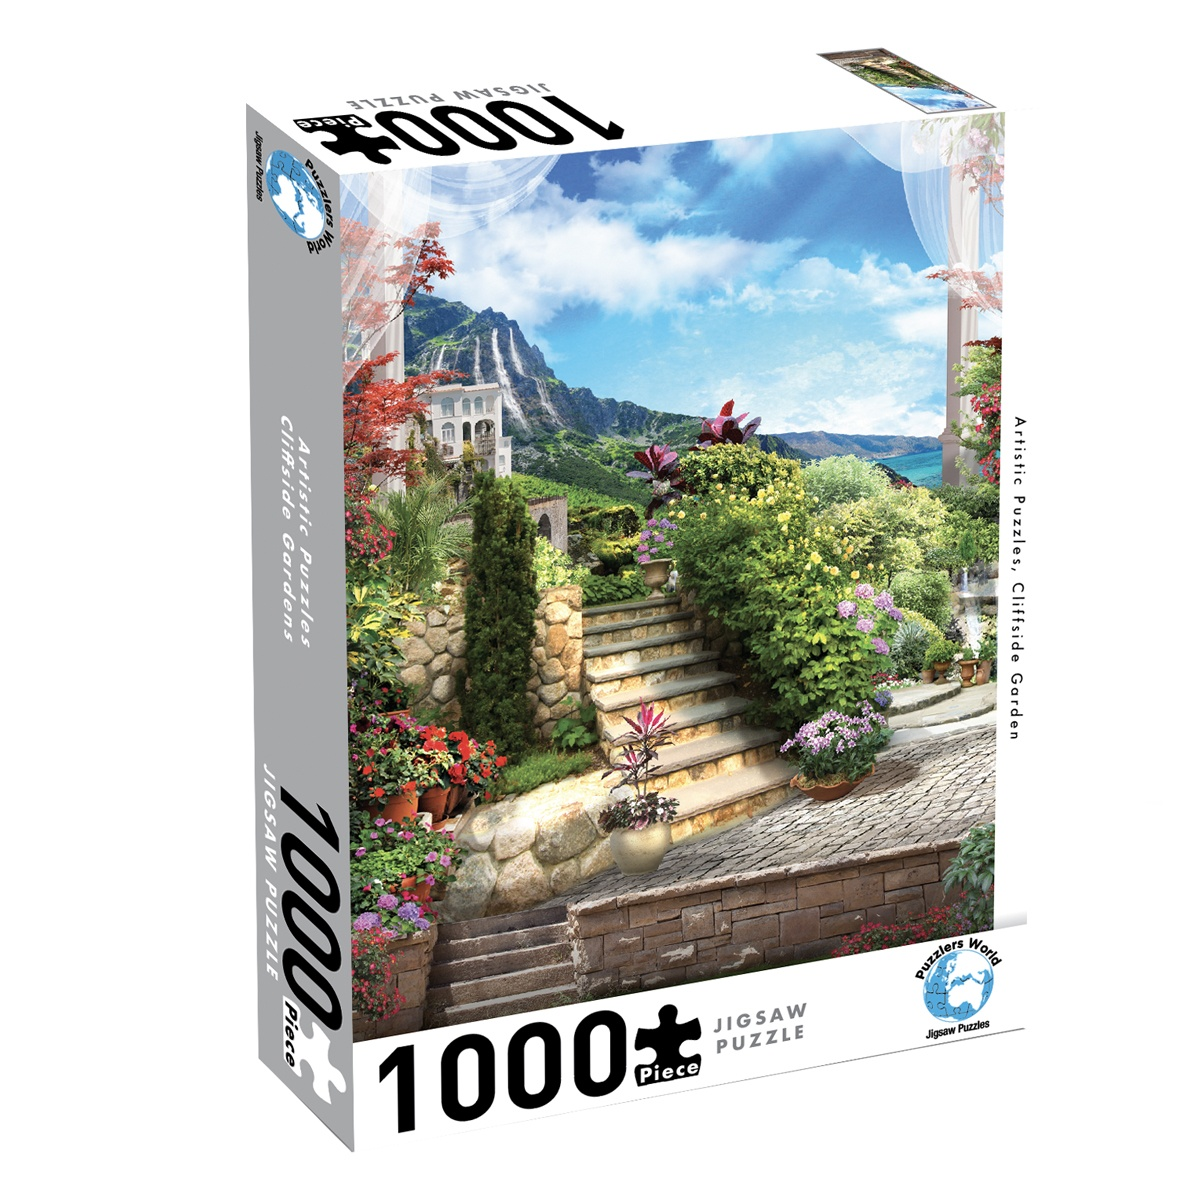 Puzzlers World ~ Artistic Jigsaw 1000pc Puzzles ~ Cliffside Garden